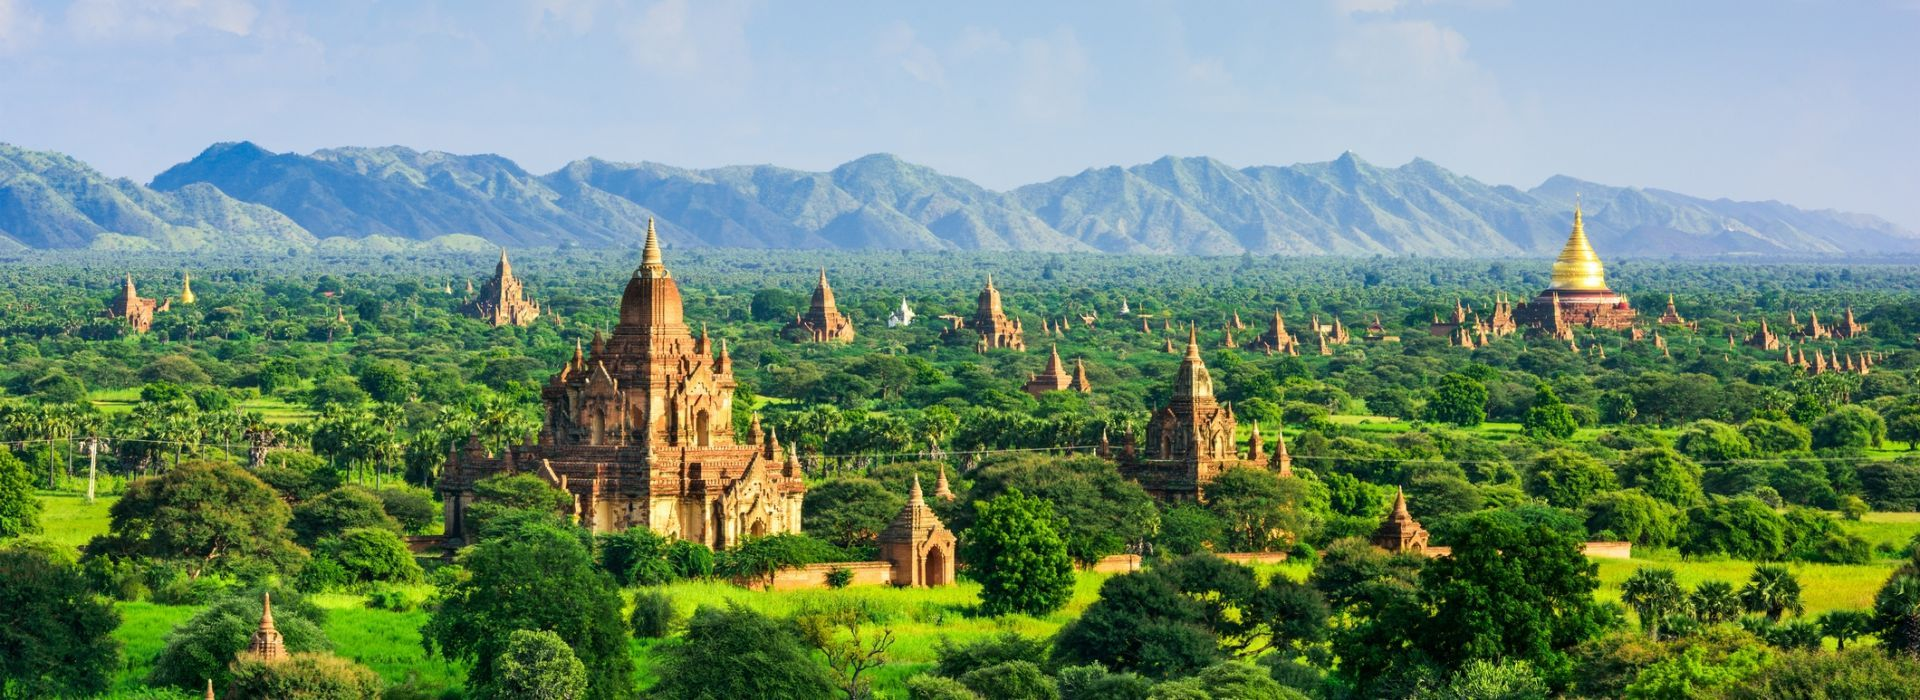 Cultural, religious and historic sites Tours in Inle Lake